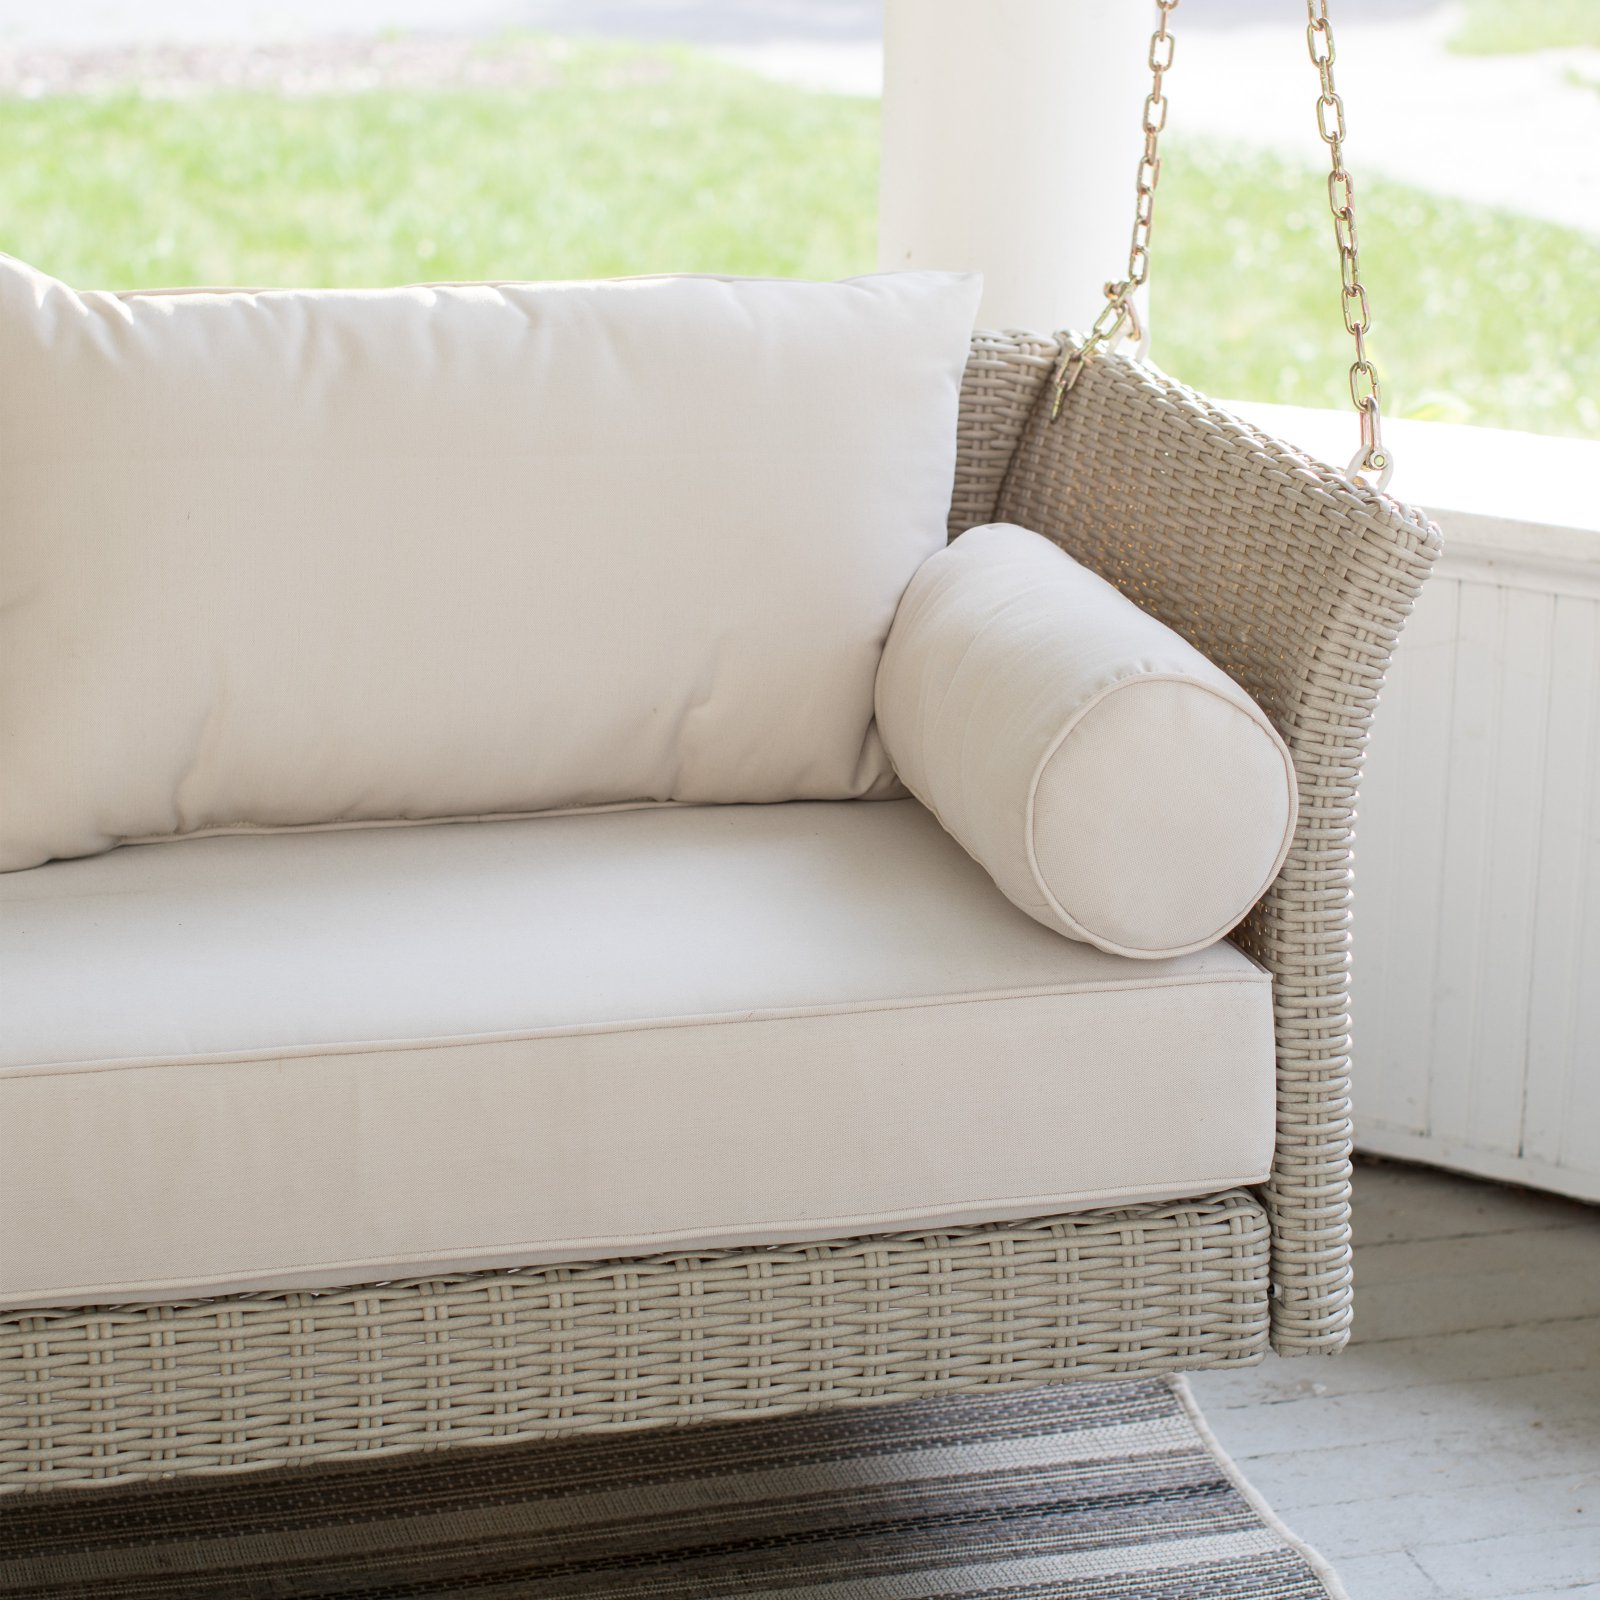 Porch Swing Bed with Cushion